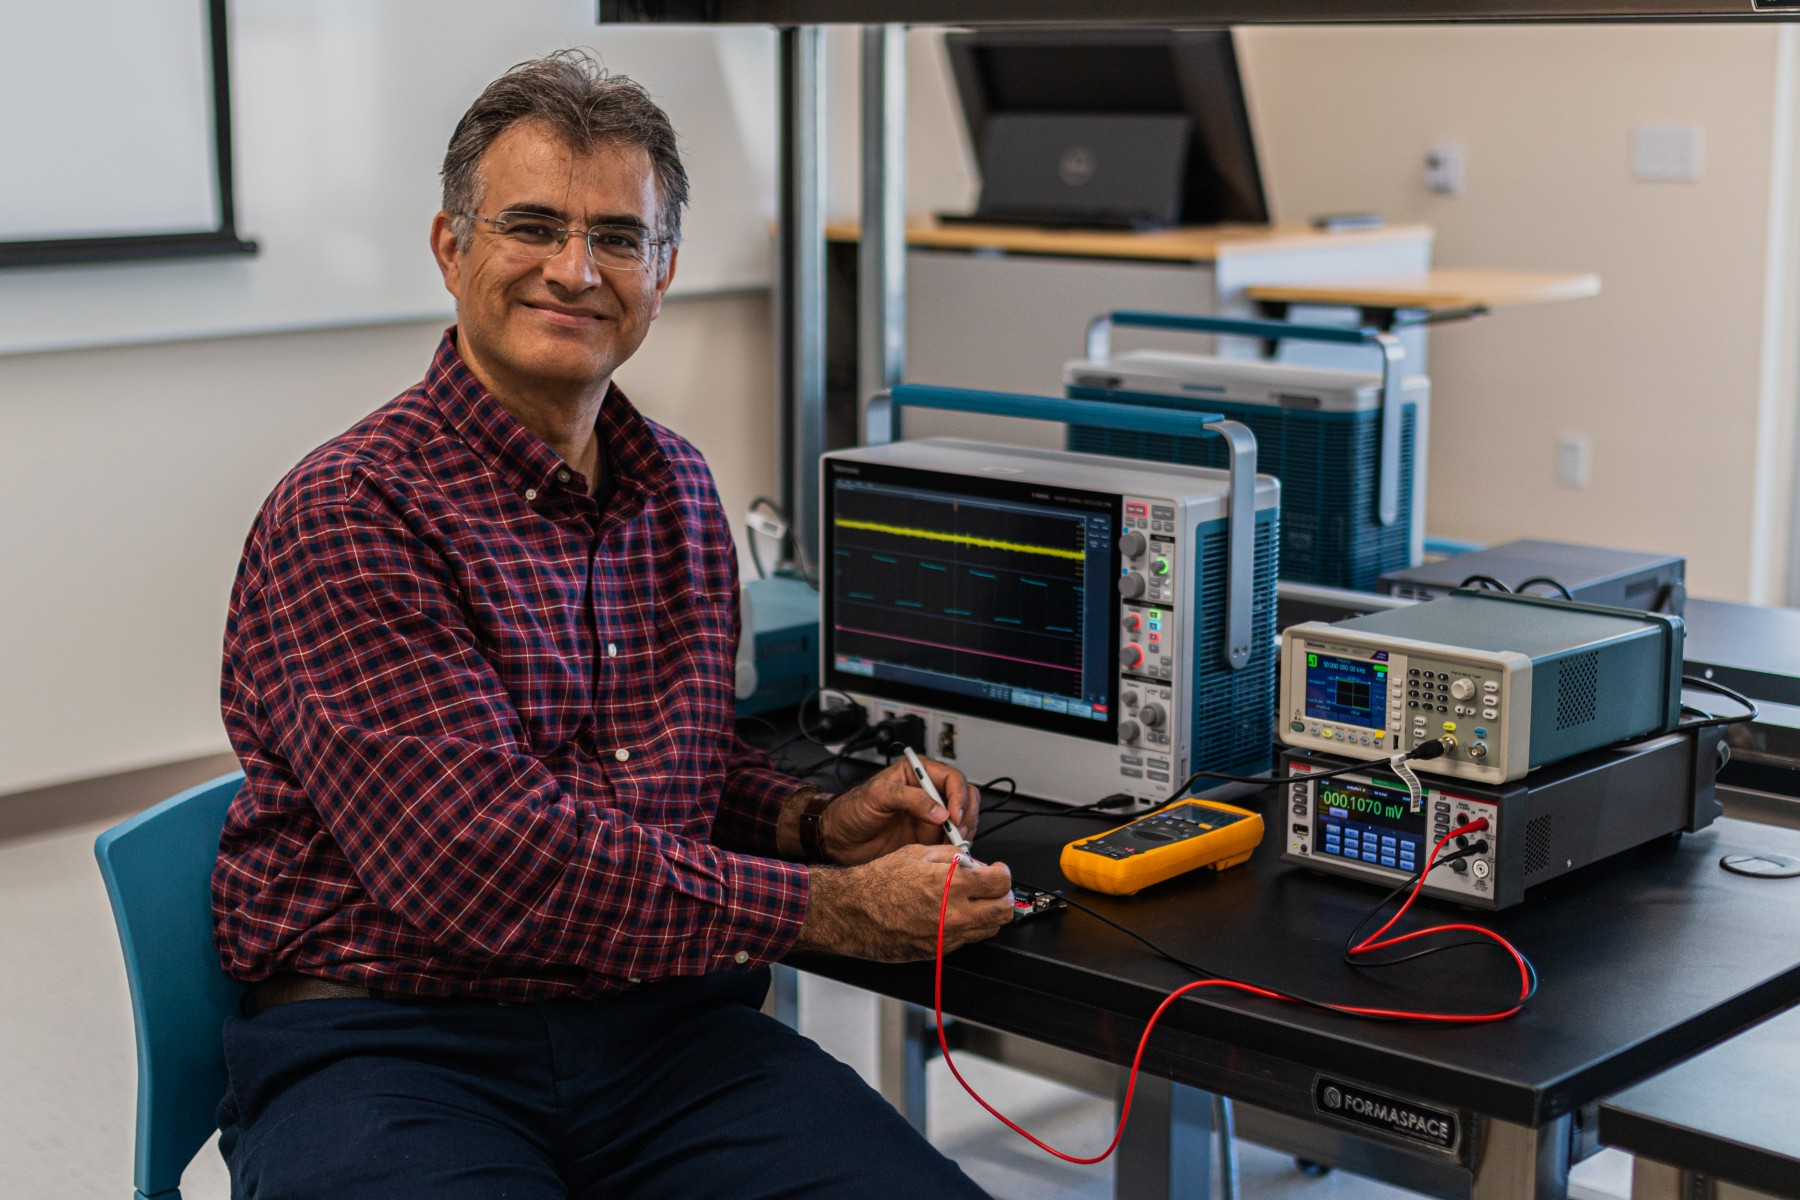 Dr. Reza Kamali-Sarvestani is the founding faculty member in Cal State San Marcos' new electrical engineering program. Photo by Long Truong